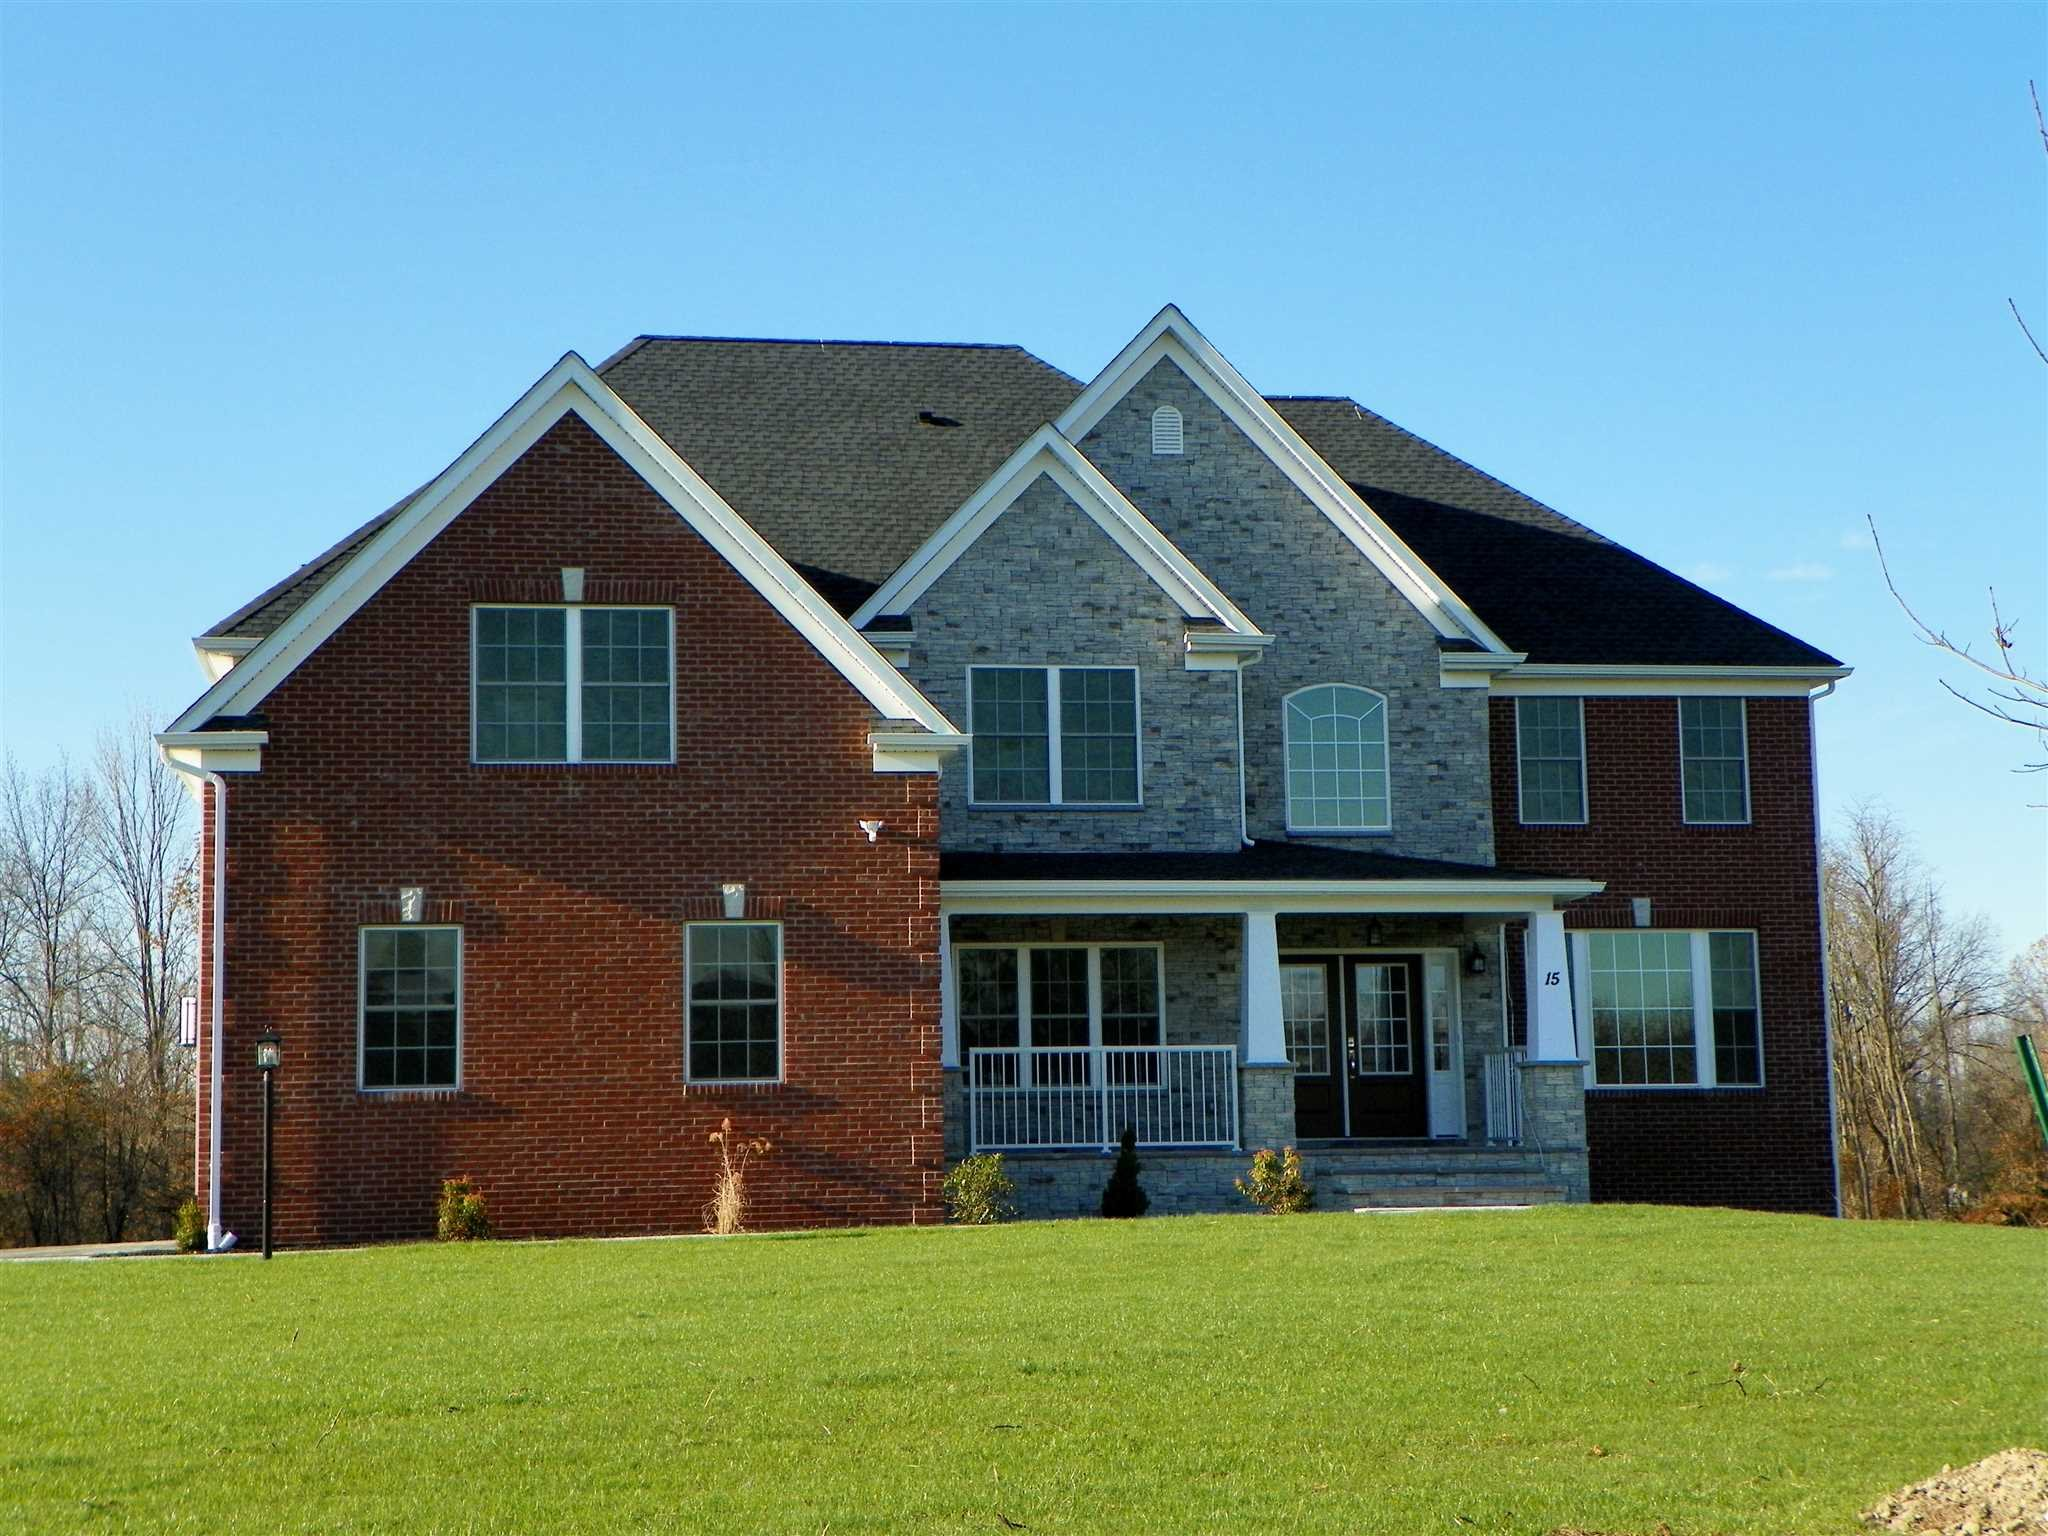 Single Family Home for Sale at 18 CALIBURN Court 18 CALIBURN Court Wappinger, New York 12590 United States